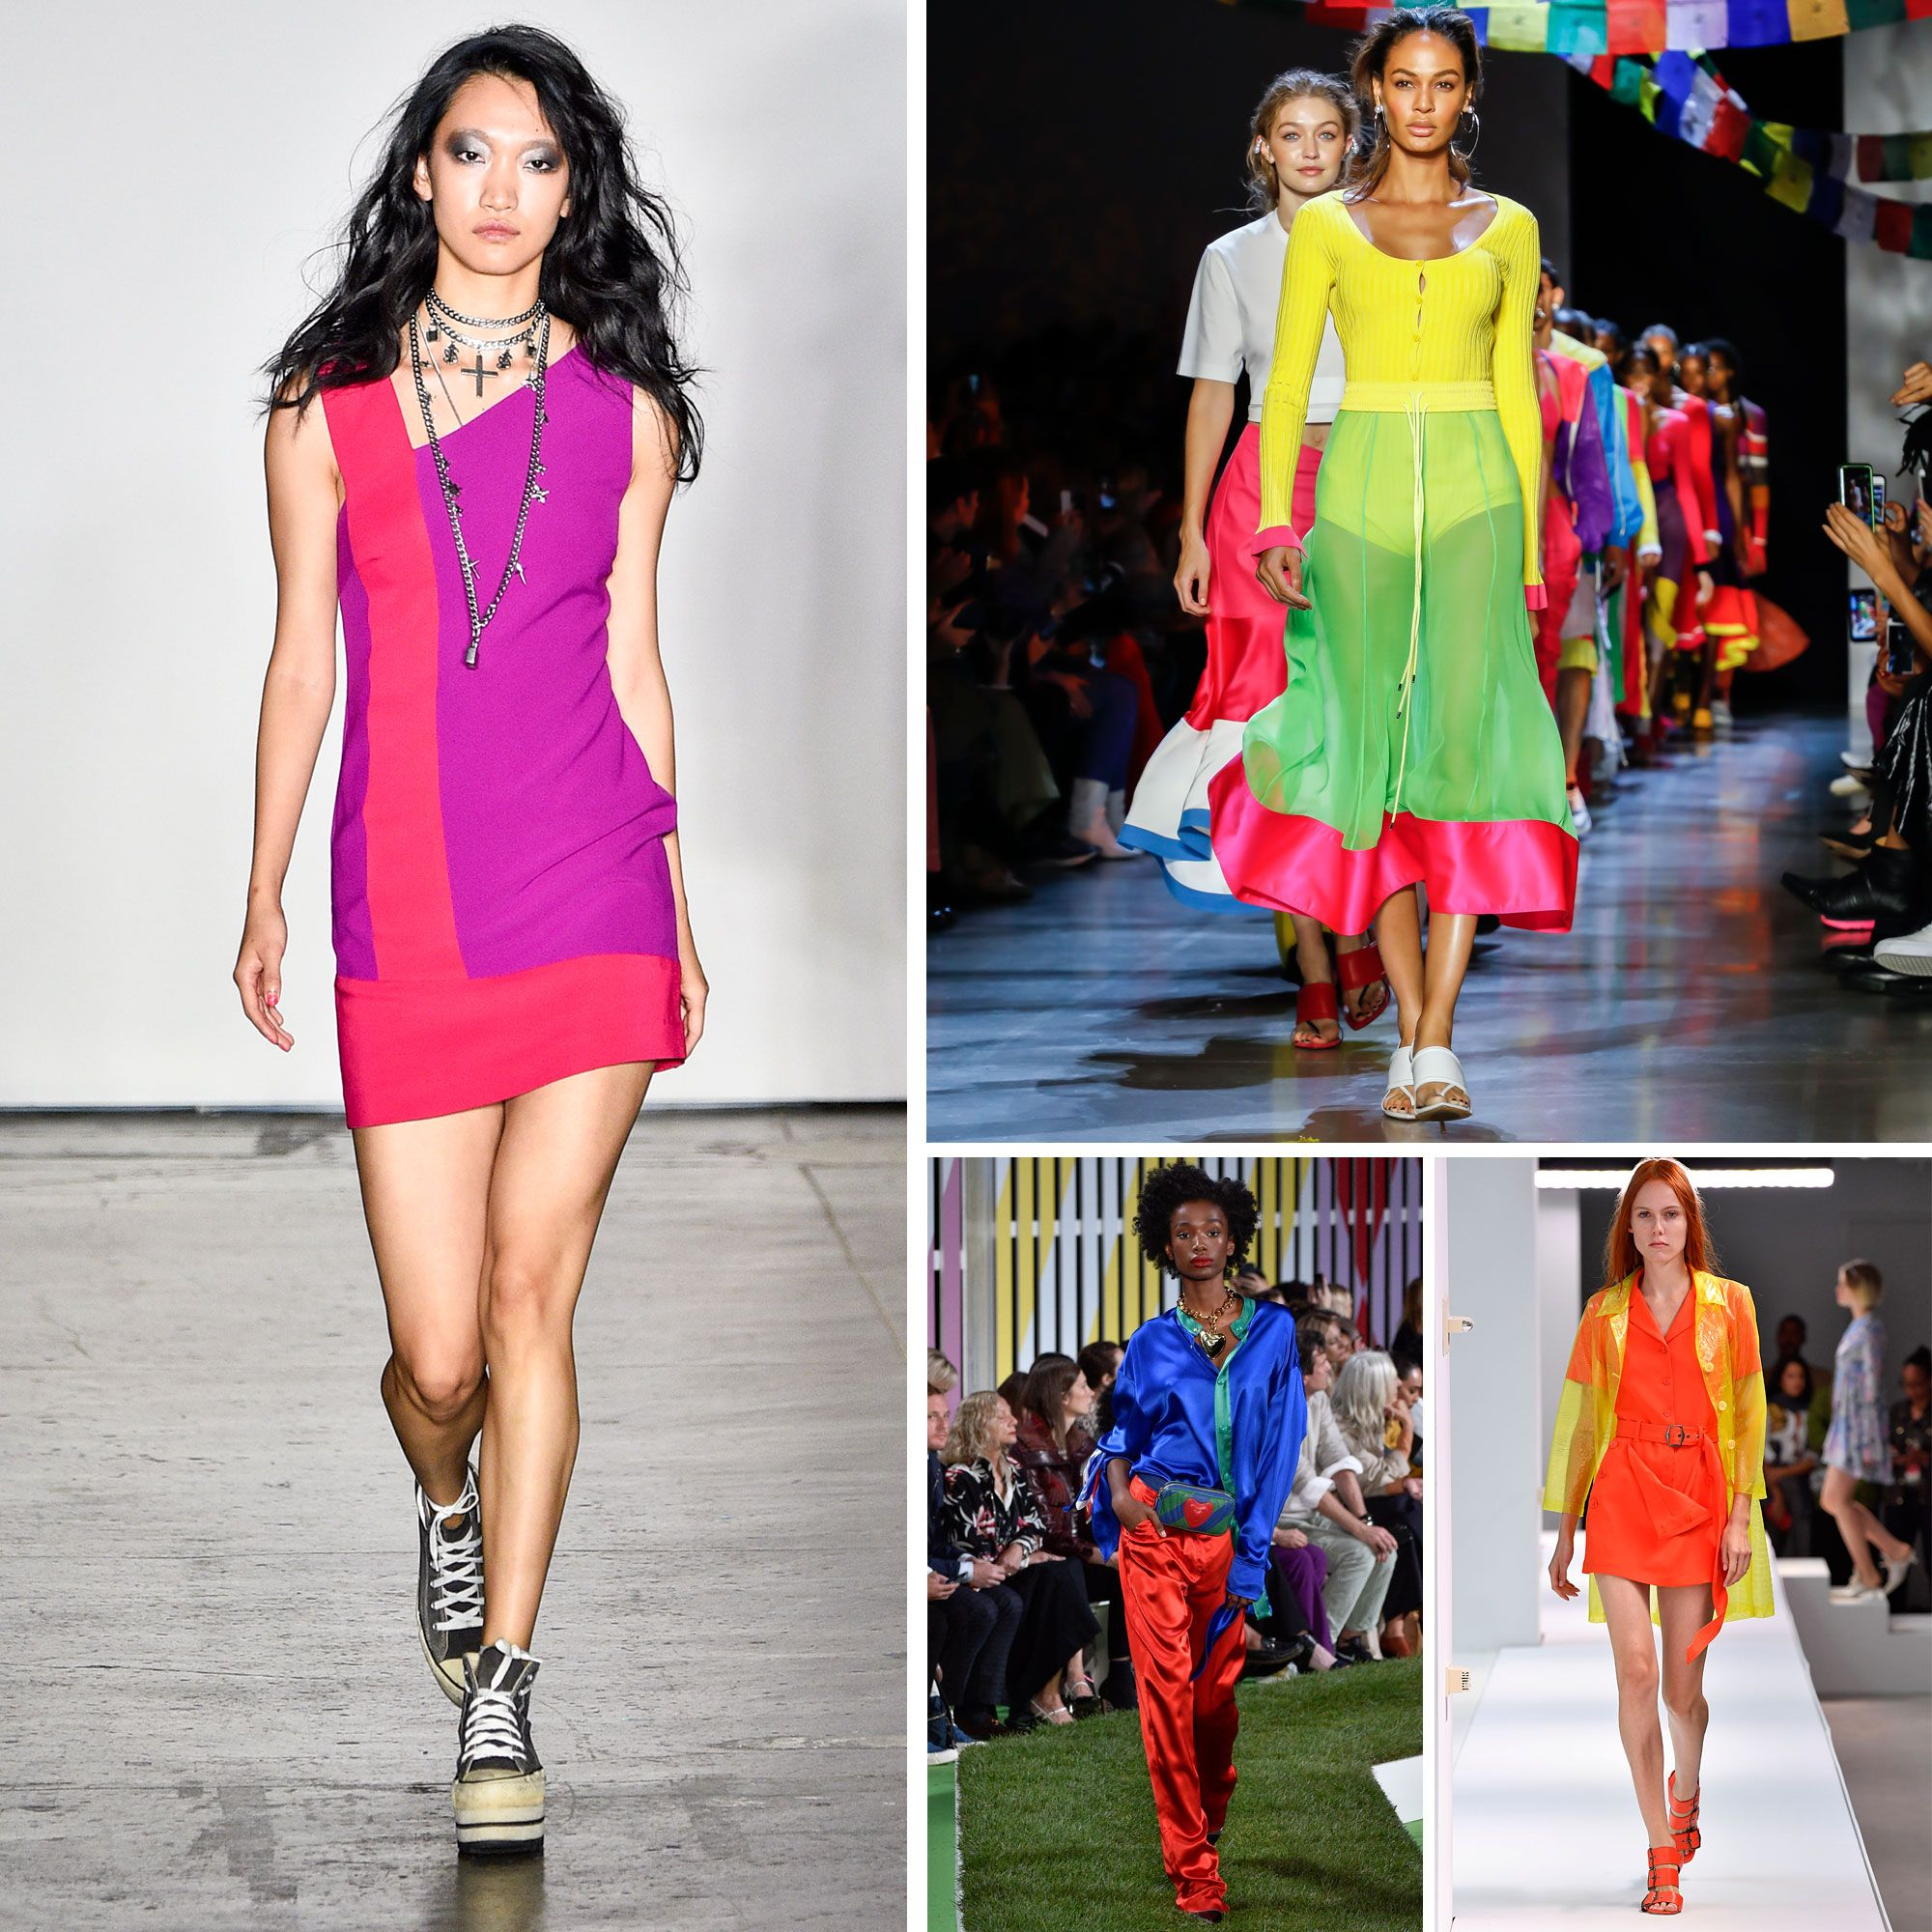 Spring/summer fashion trends 2019 - colour blocking